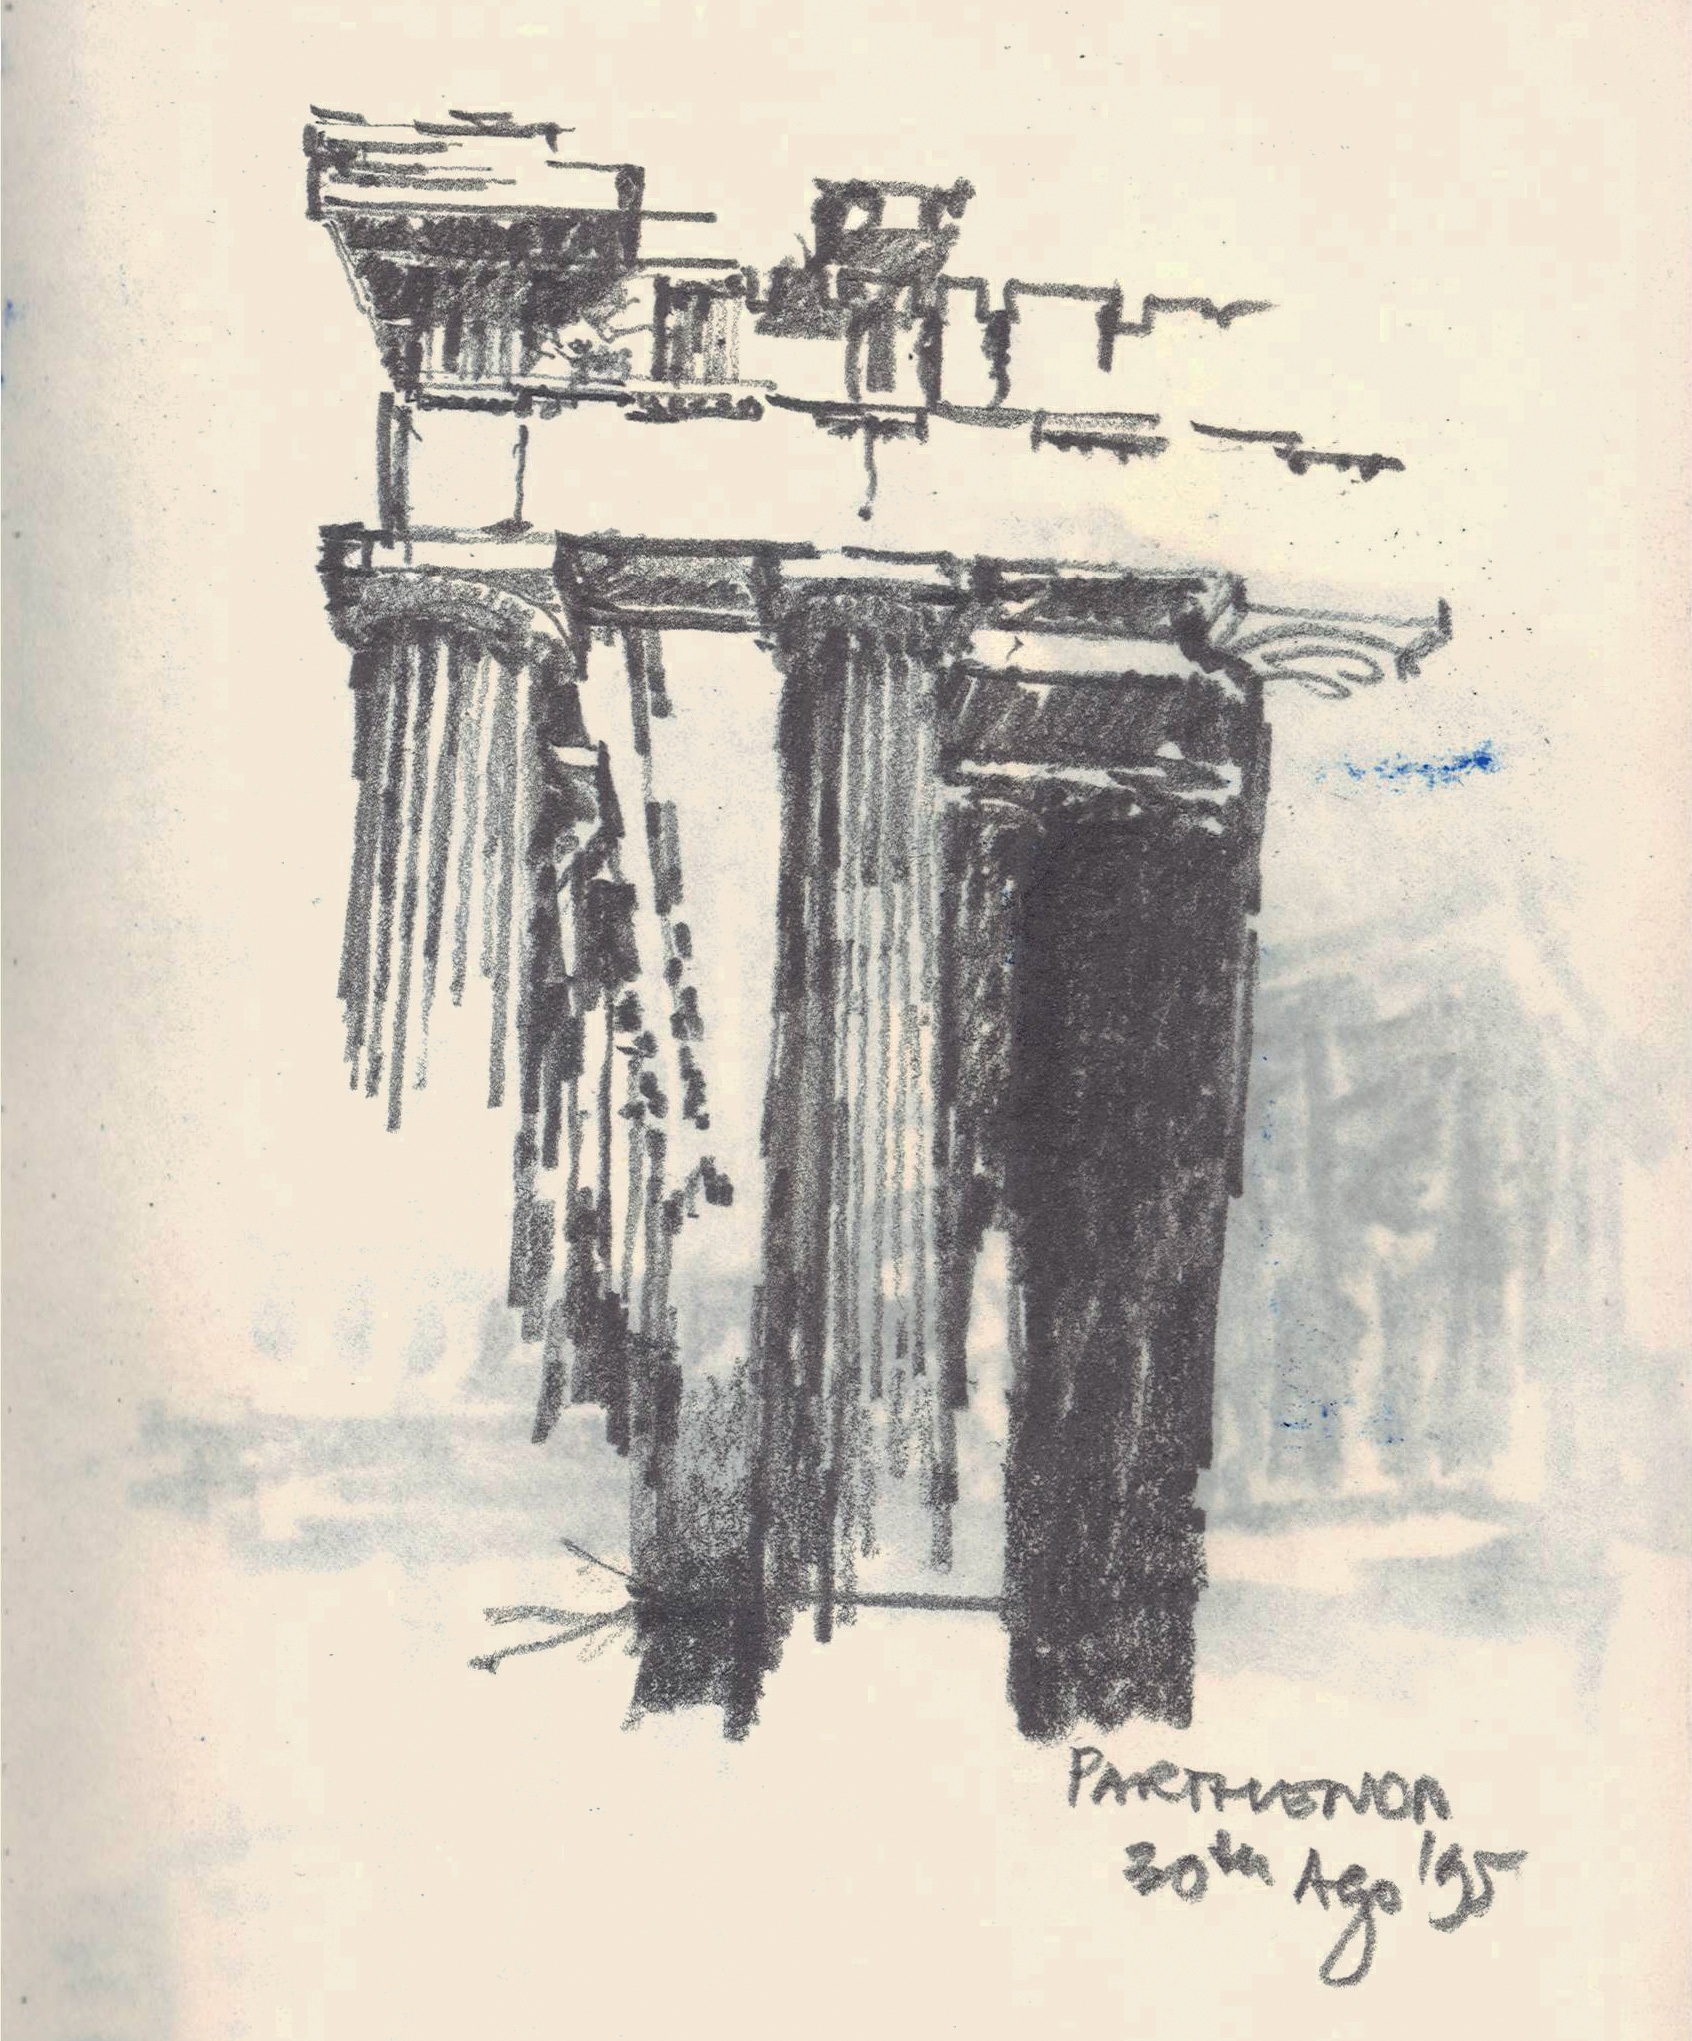 Sketch of the Parthenon by Riyaz Tayyibji |Acropolis |Riyaz Tayyibji | STIRworld